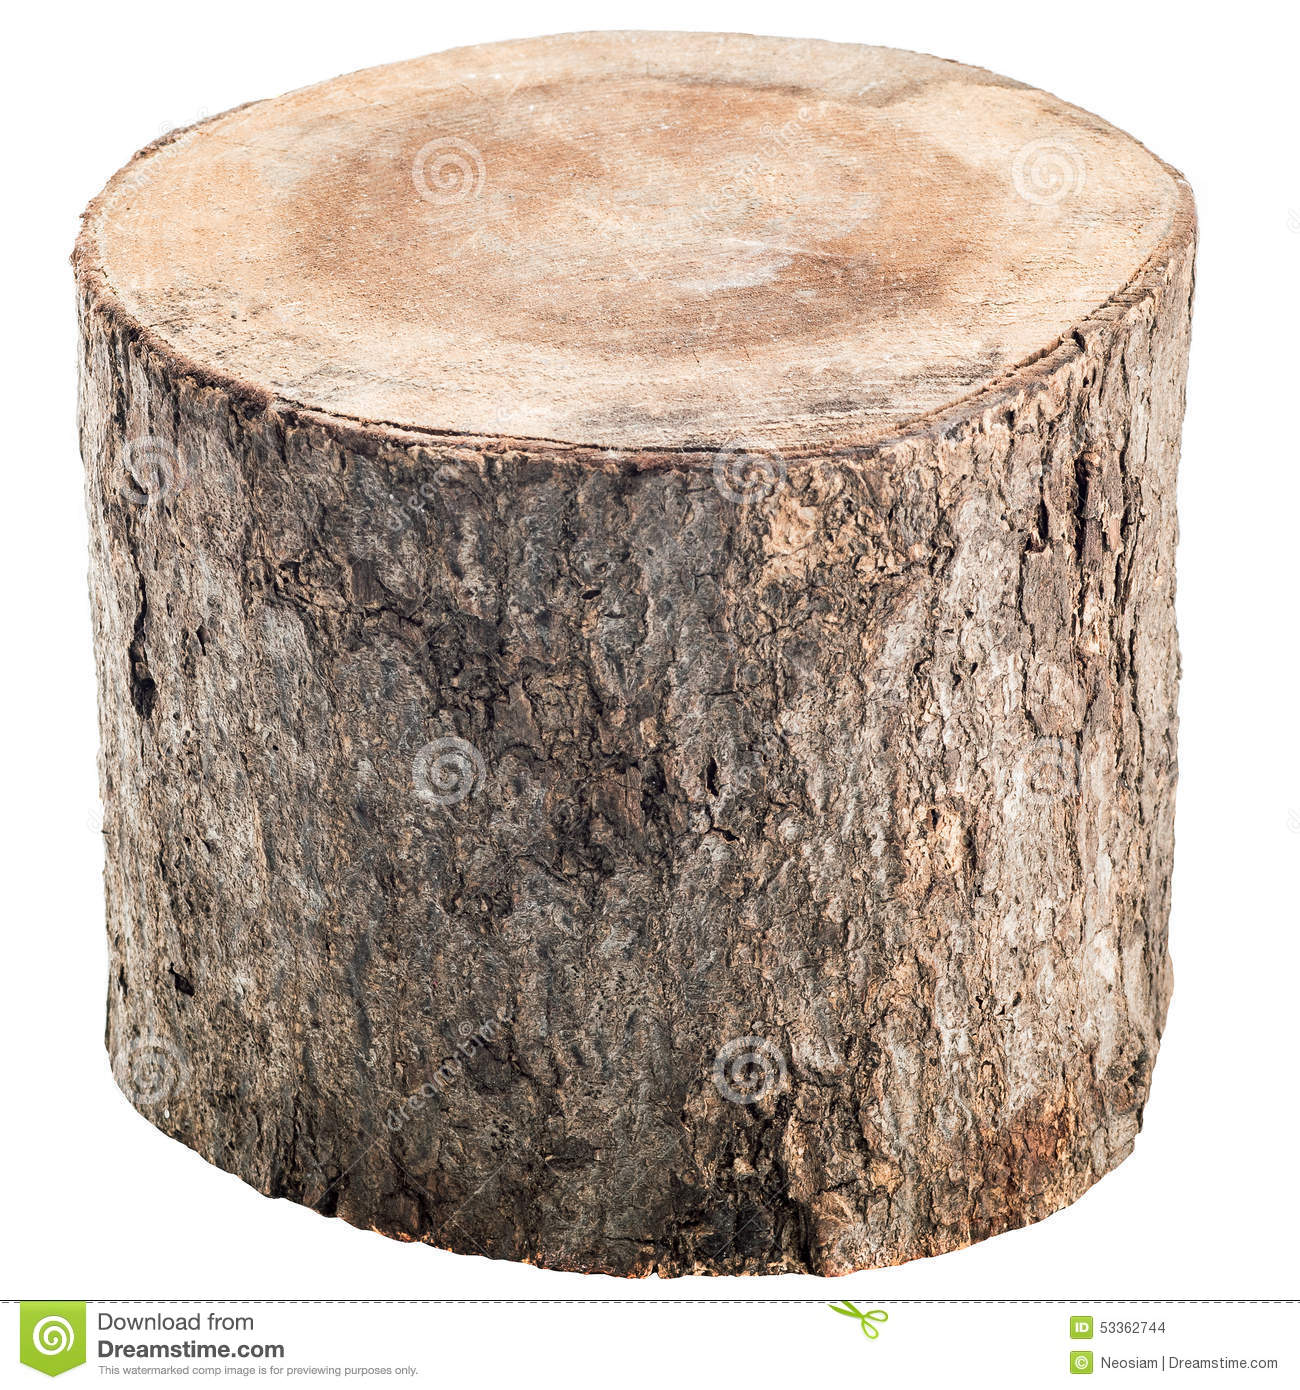 Single wood log clipart.